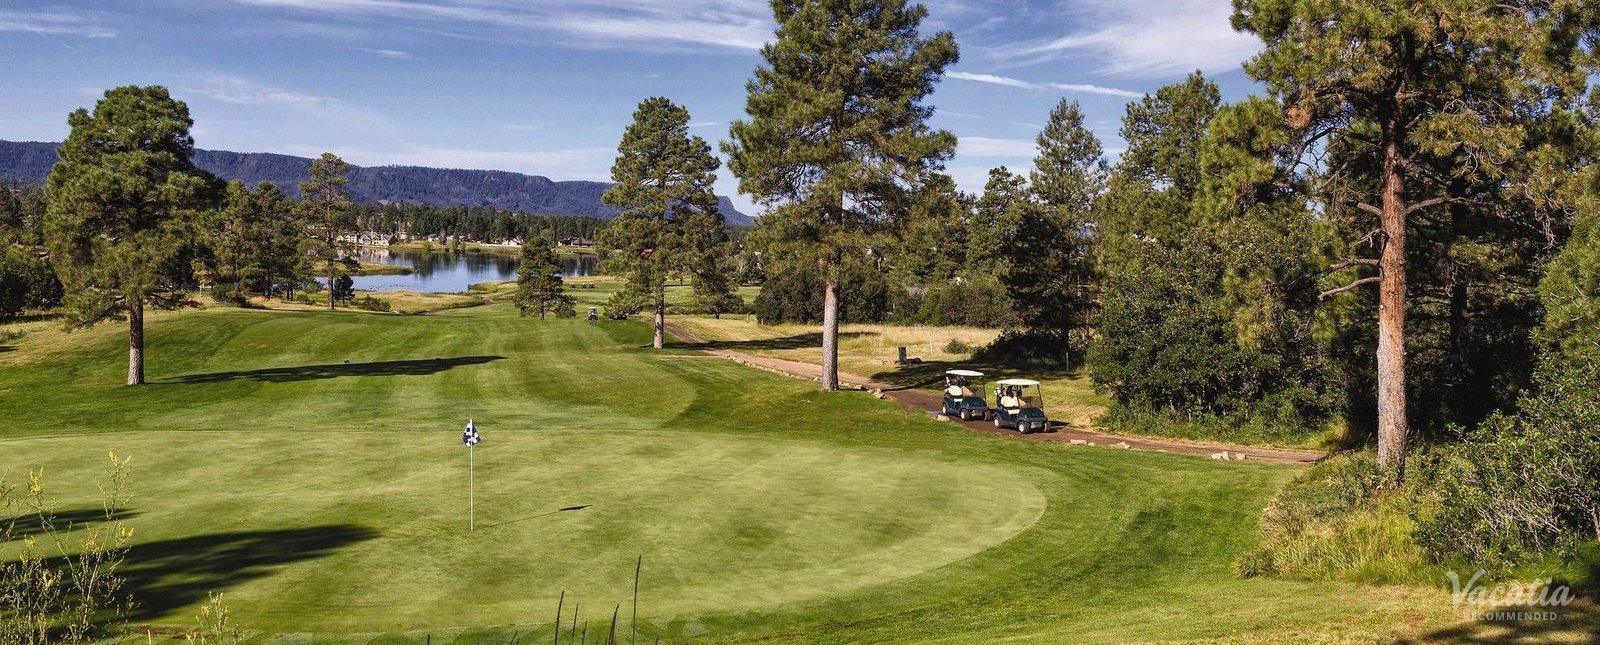 Wyndham Pagosa Springs Resort Golf Club